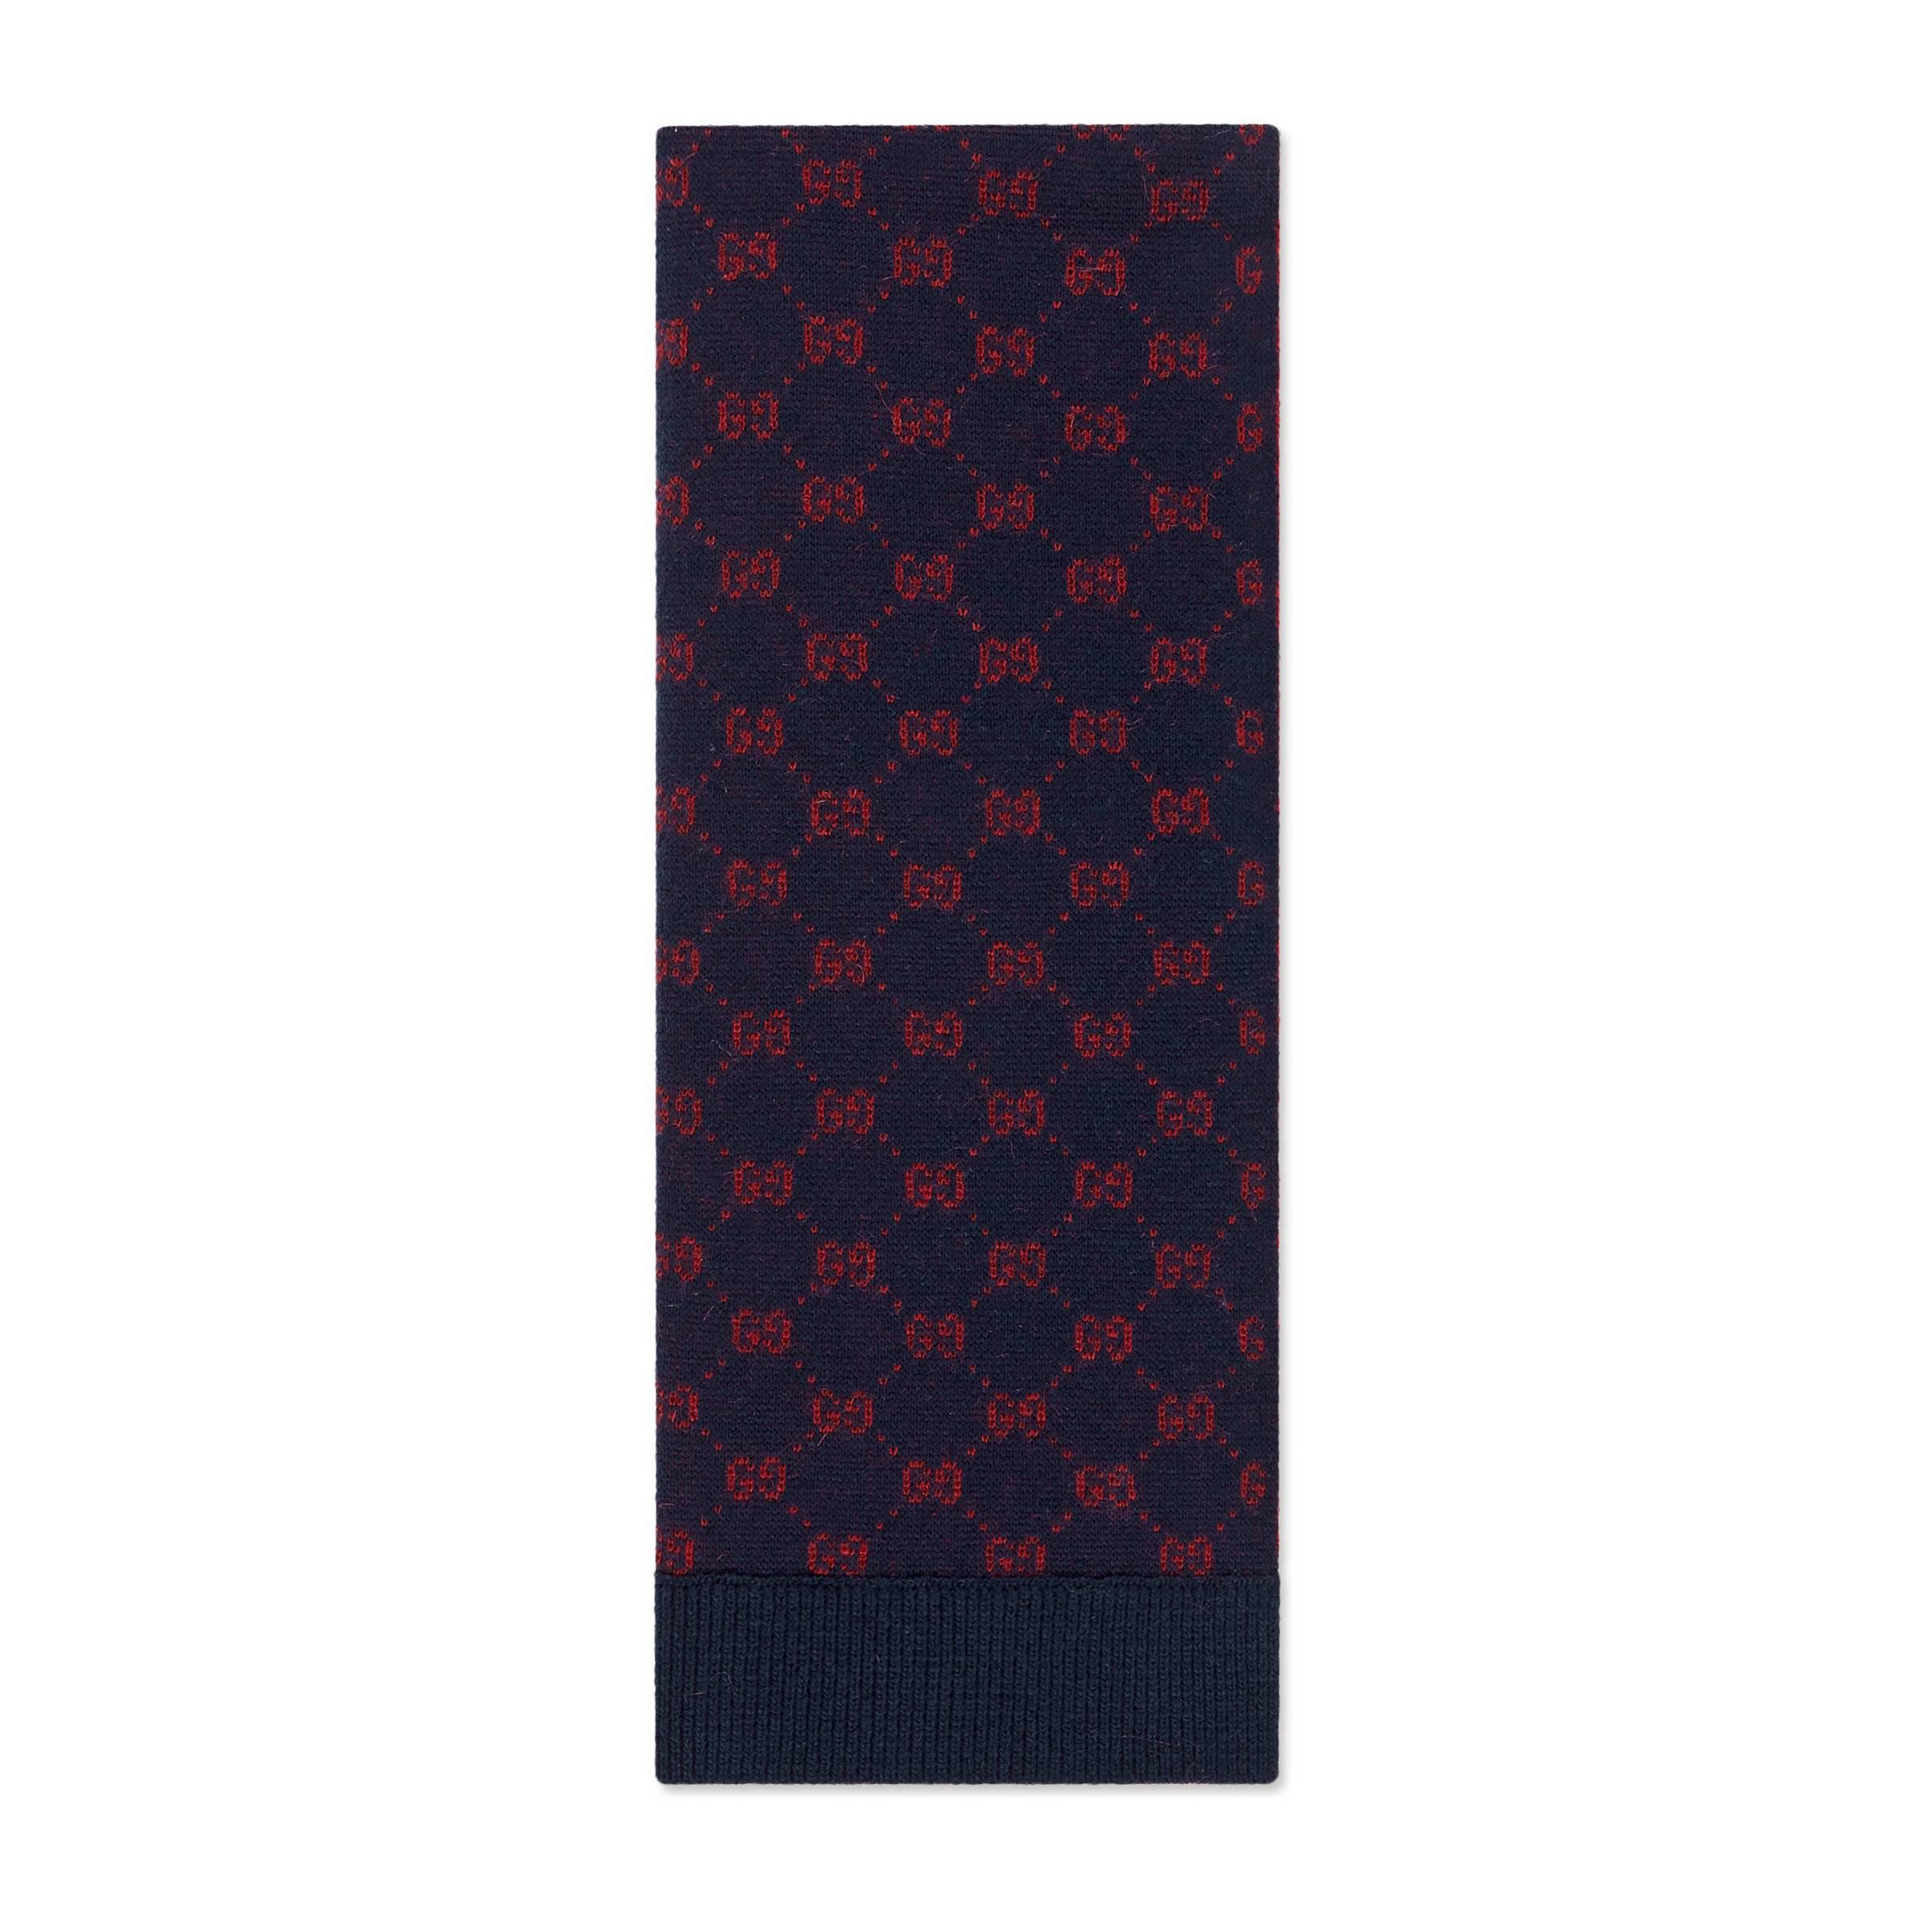 ef1d5d99a8 Gucci GG Alpaca Wool Scarf in Blue for Men - Lyst